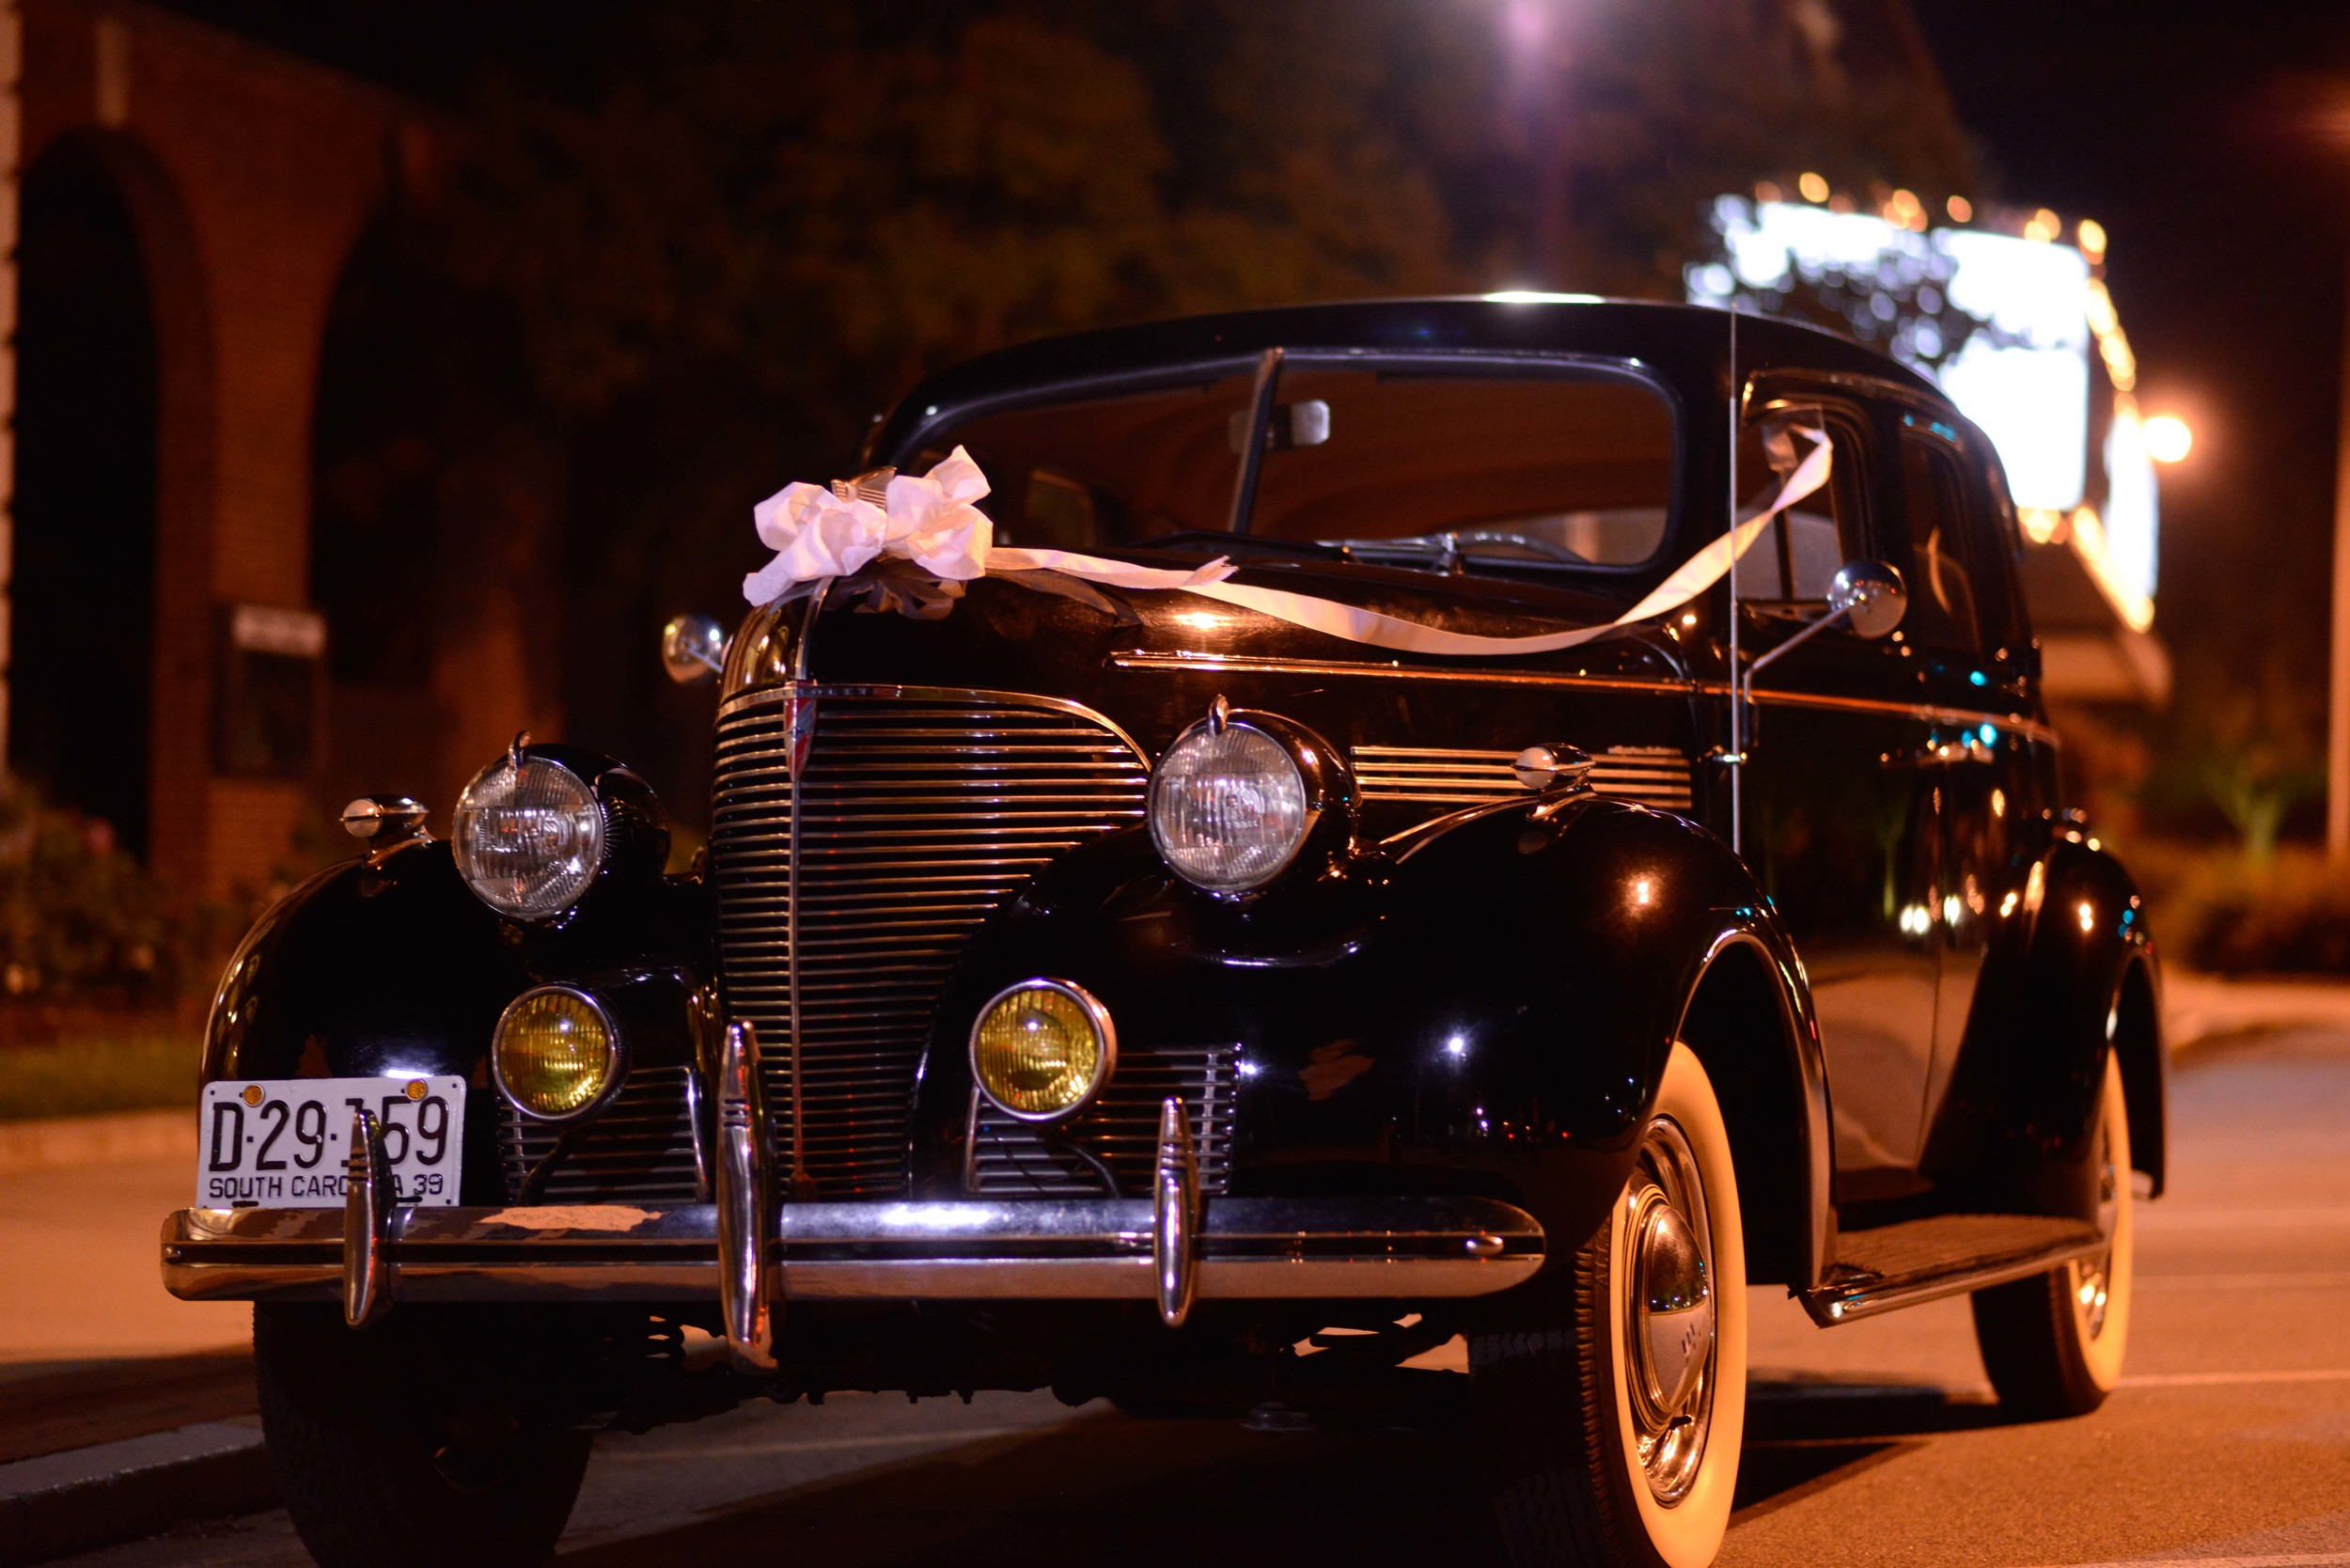 Vintage Cars by: Denis Cook